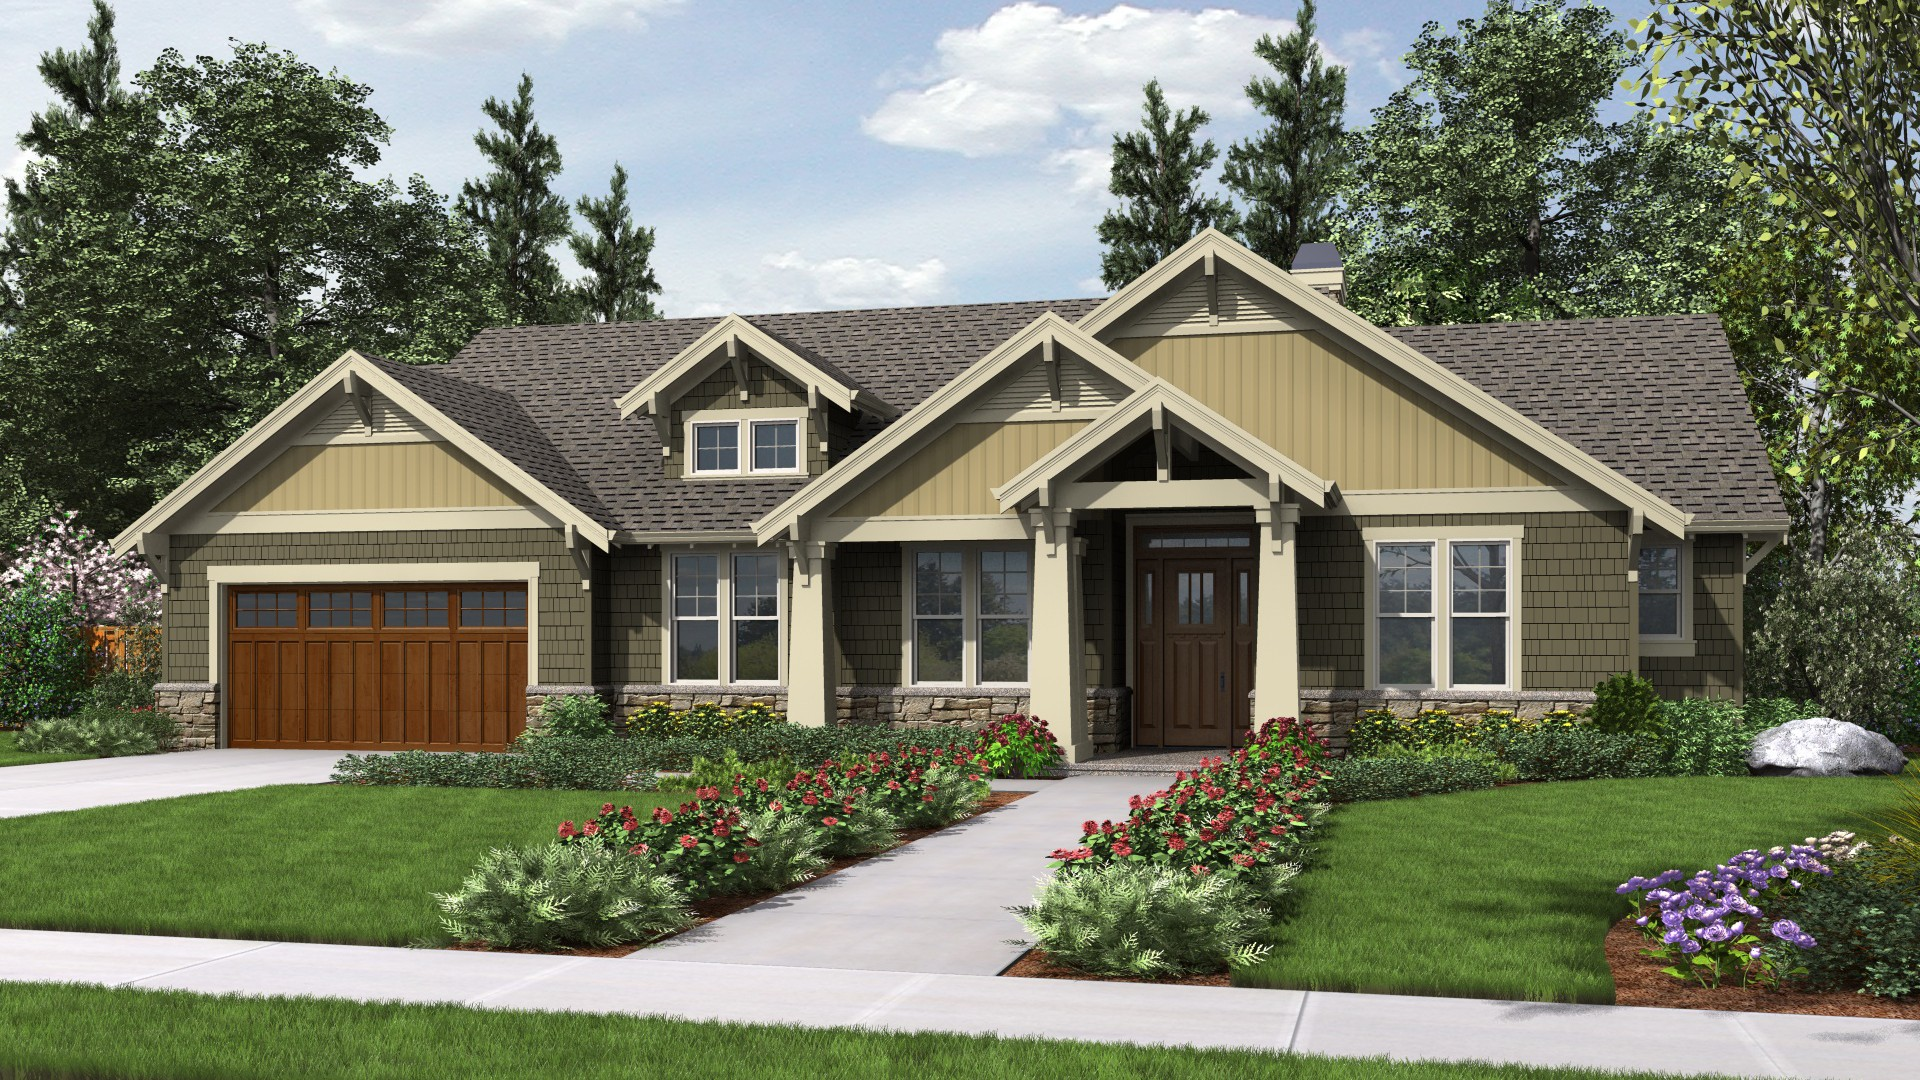 craftsman house plans with basement craftsman house plan 1144eb the umatilla 1868 sqft 3 beds 2 baths 2373